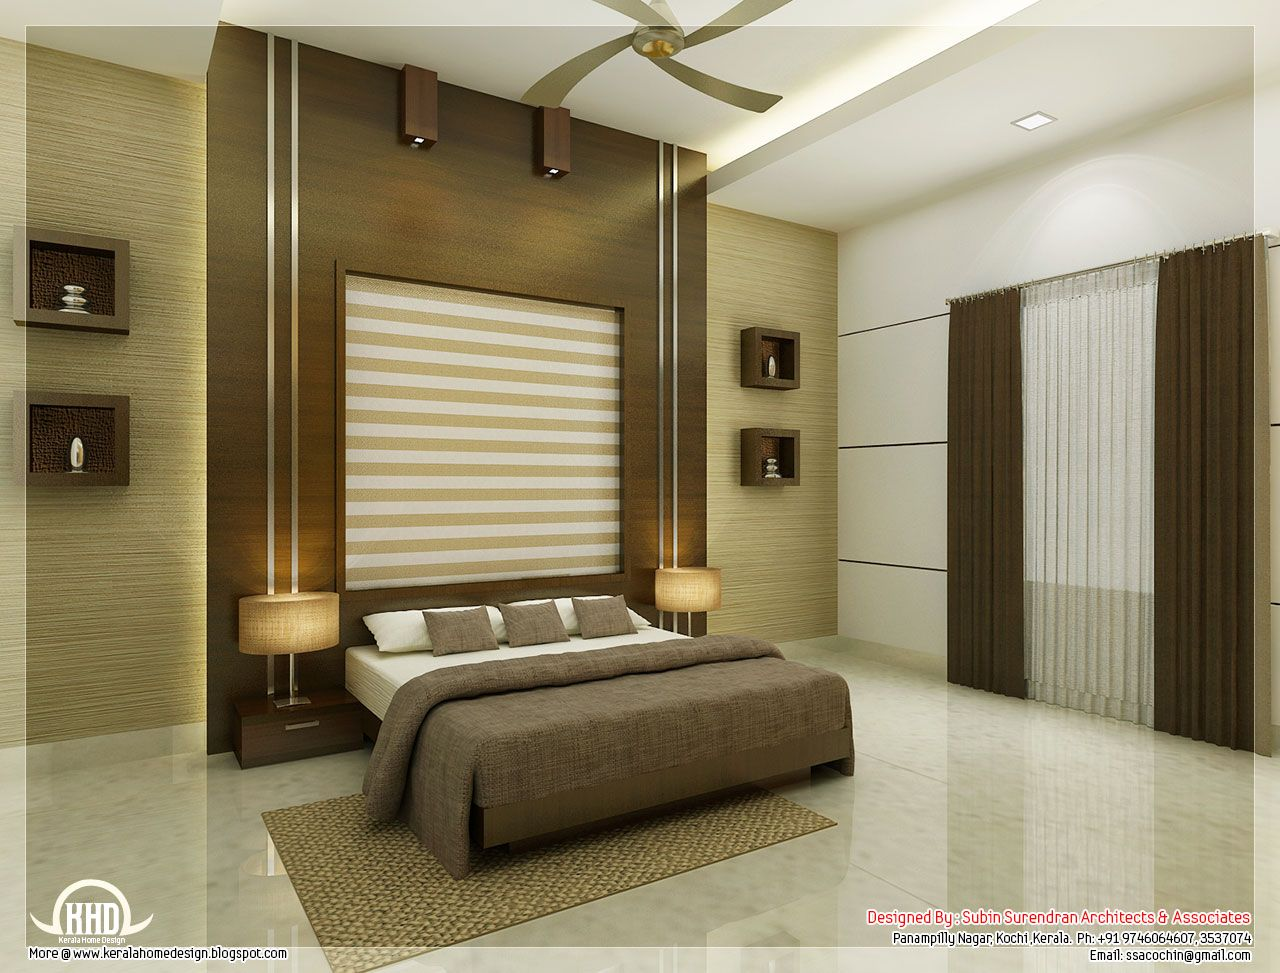 Beautiful bedroom interiors - Beautiful Bedrooms Beautiful Bedroom Interior Designs By Subin Surendran Architects